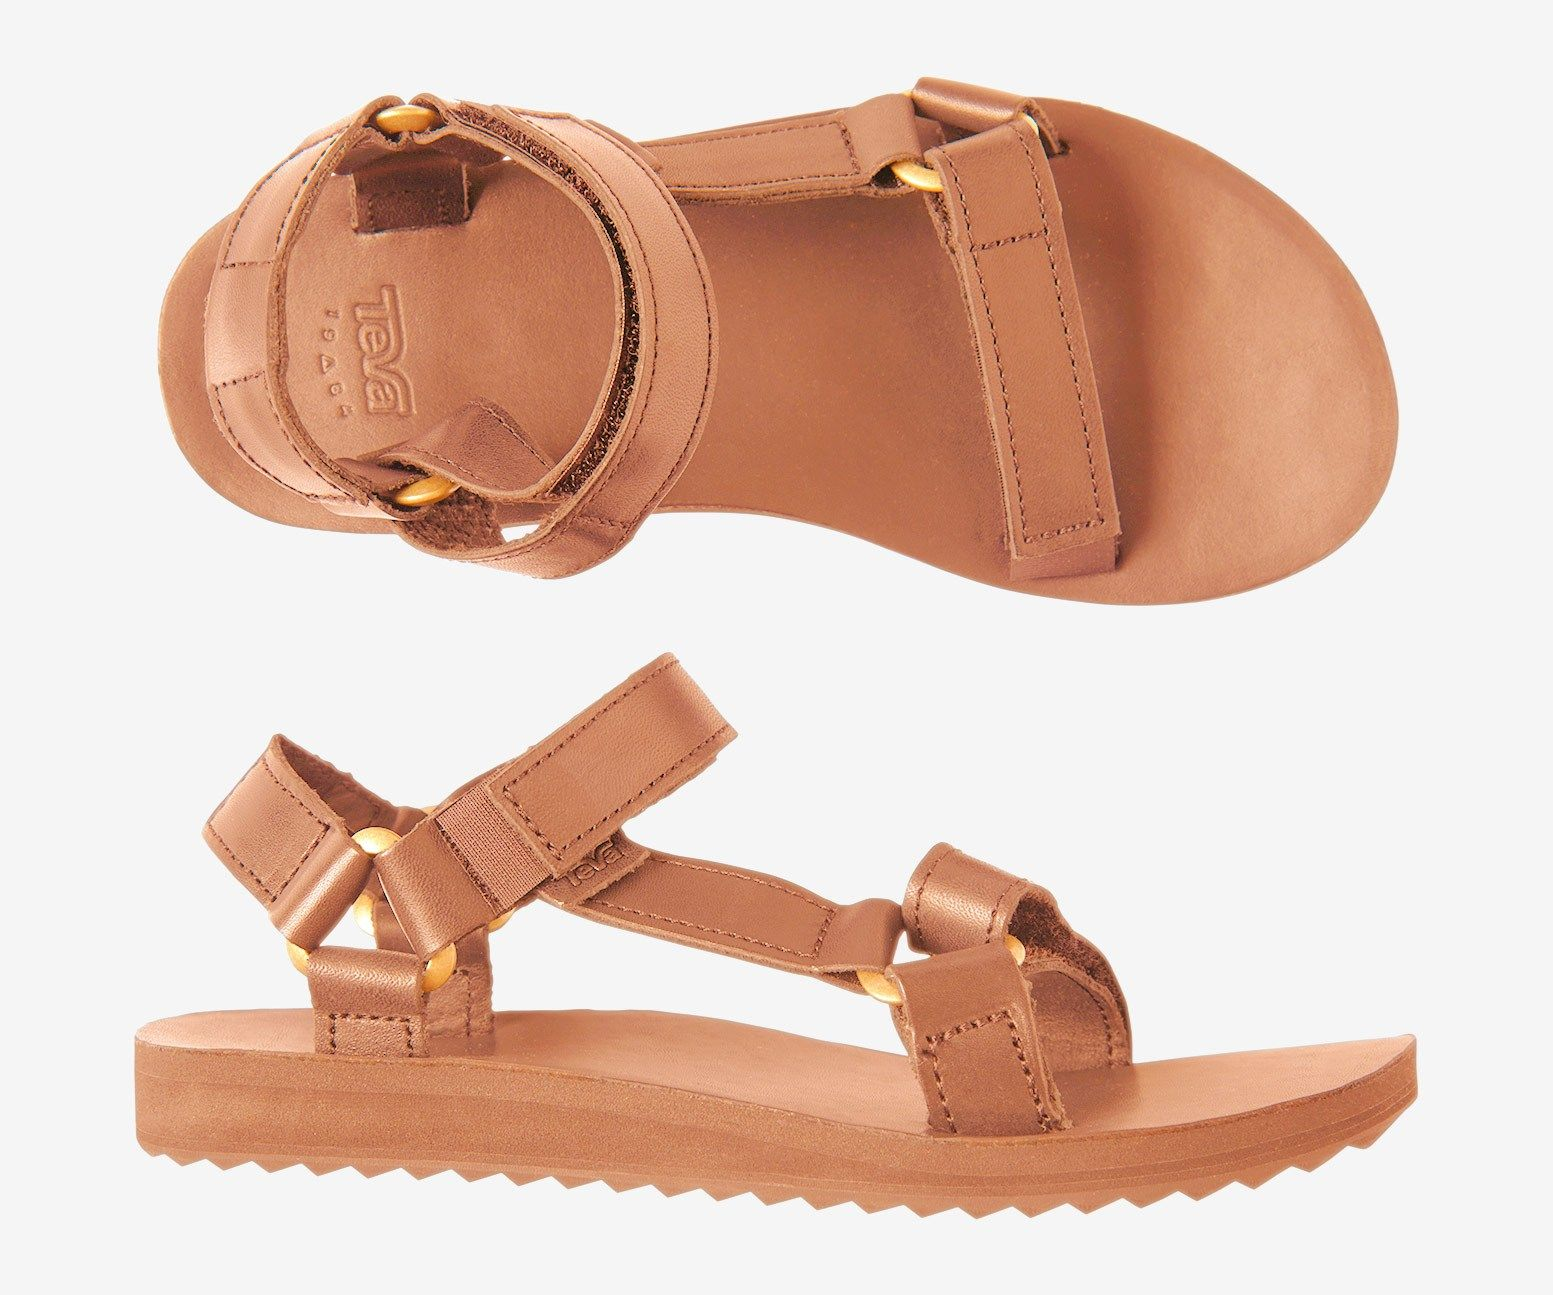 65dc8ab168 Women's Teva Leather Sandals | TOAST | Clothes in 2019 | Shoes, Tan ...